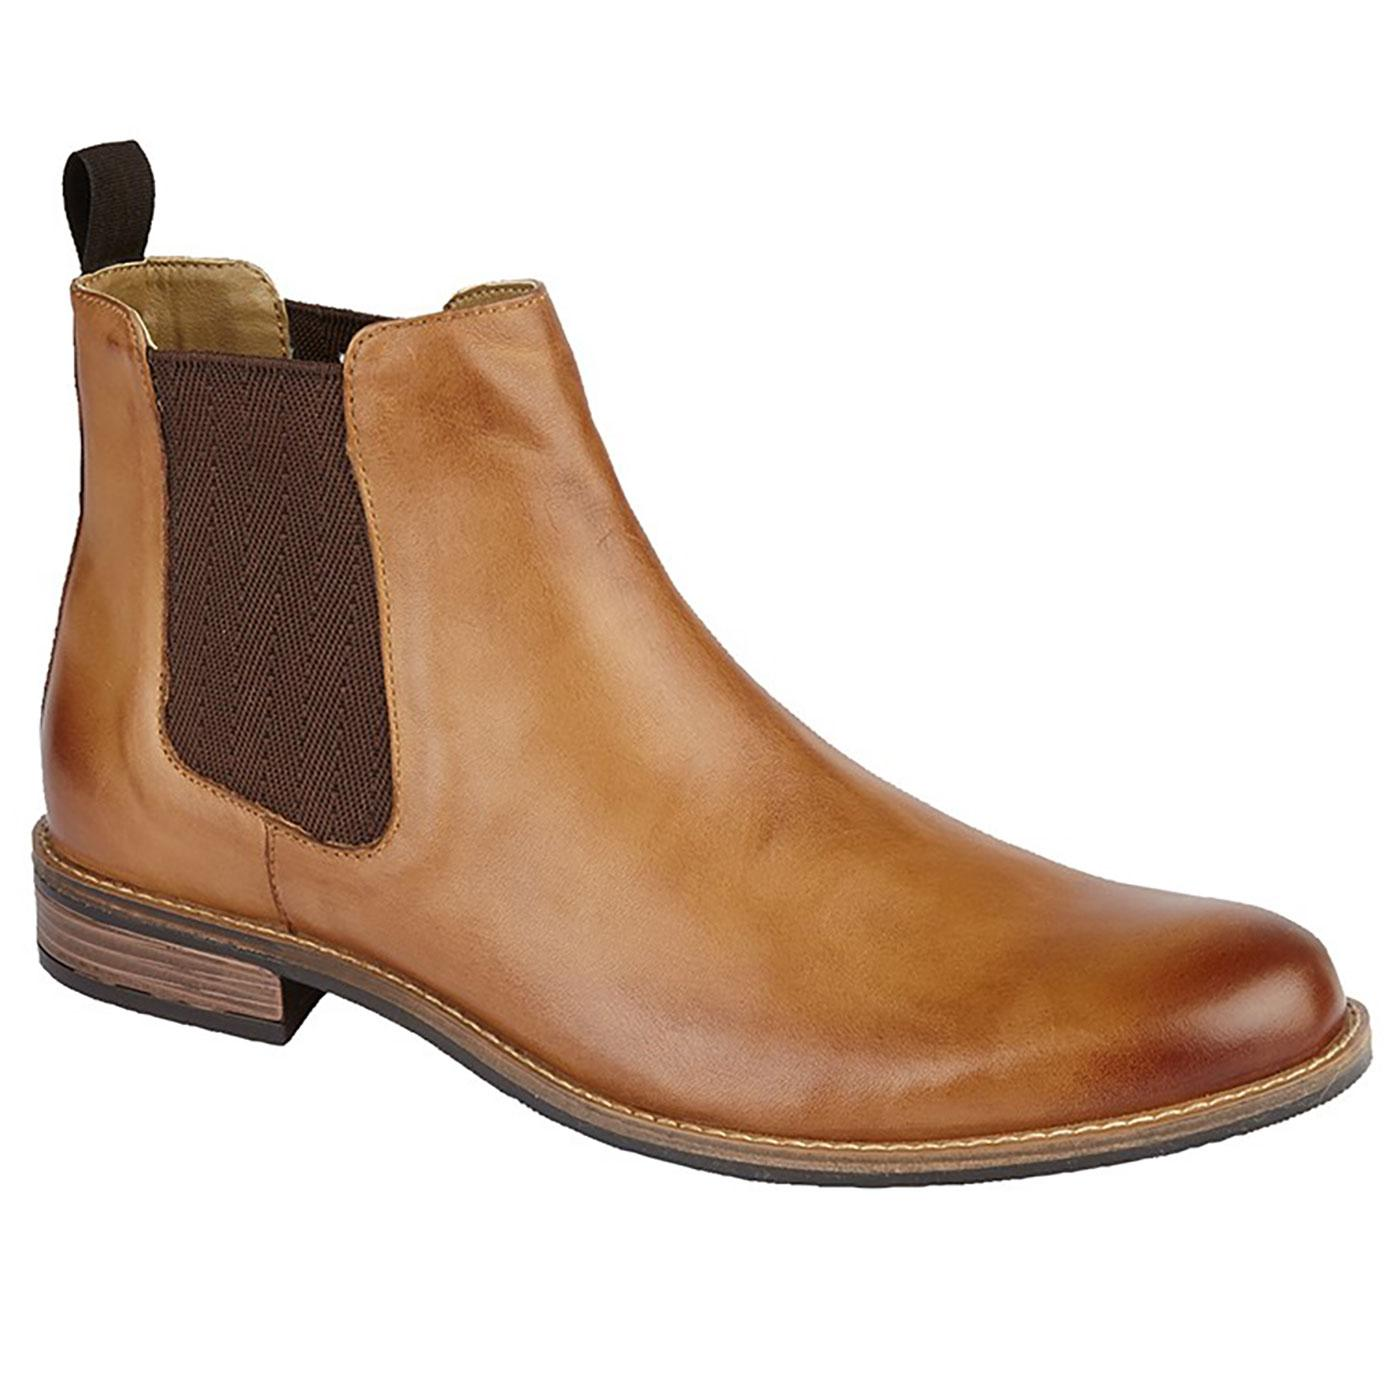 Men's Retro Mod Chelsea Boots in Tan Leather